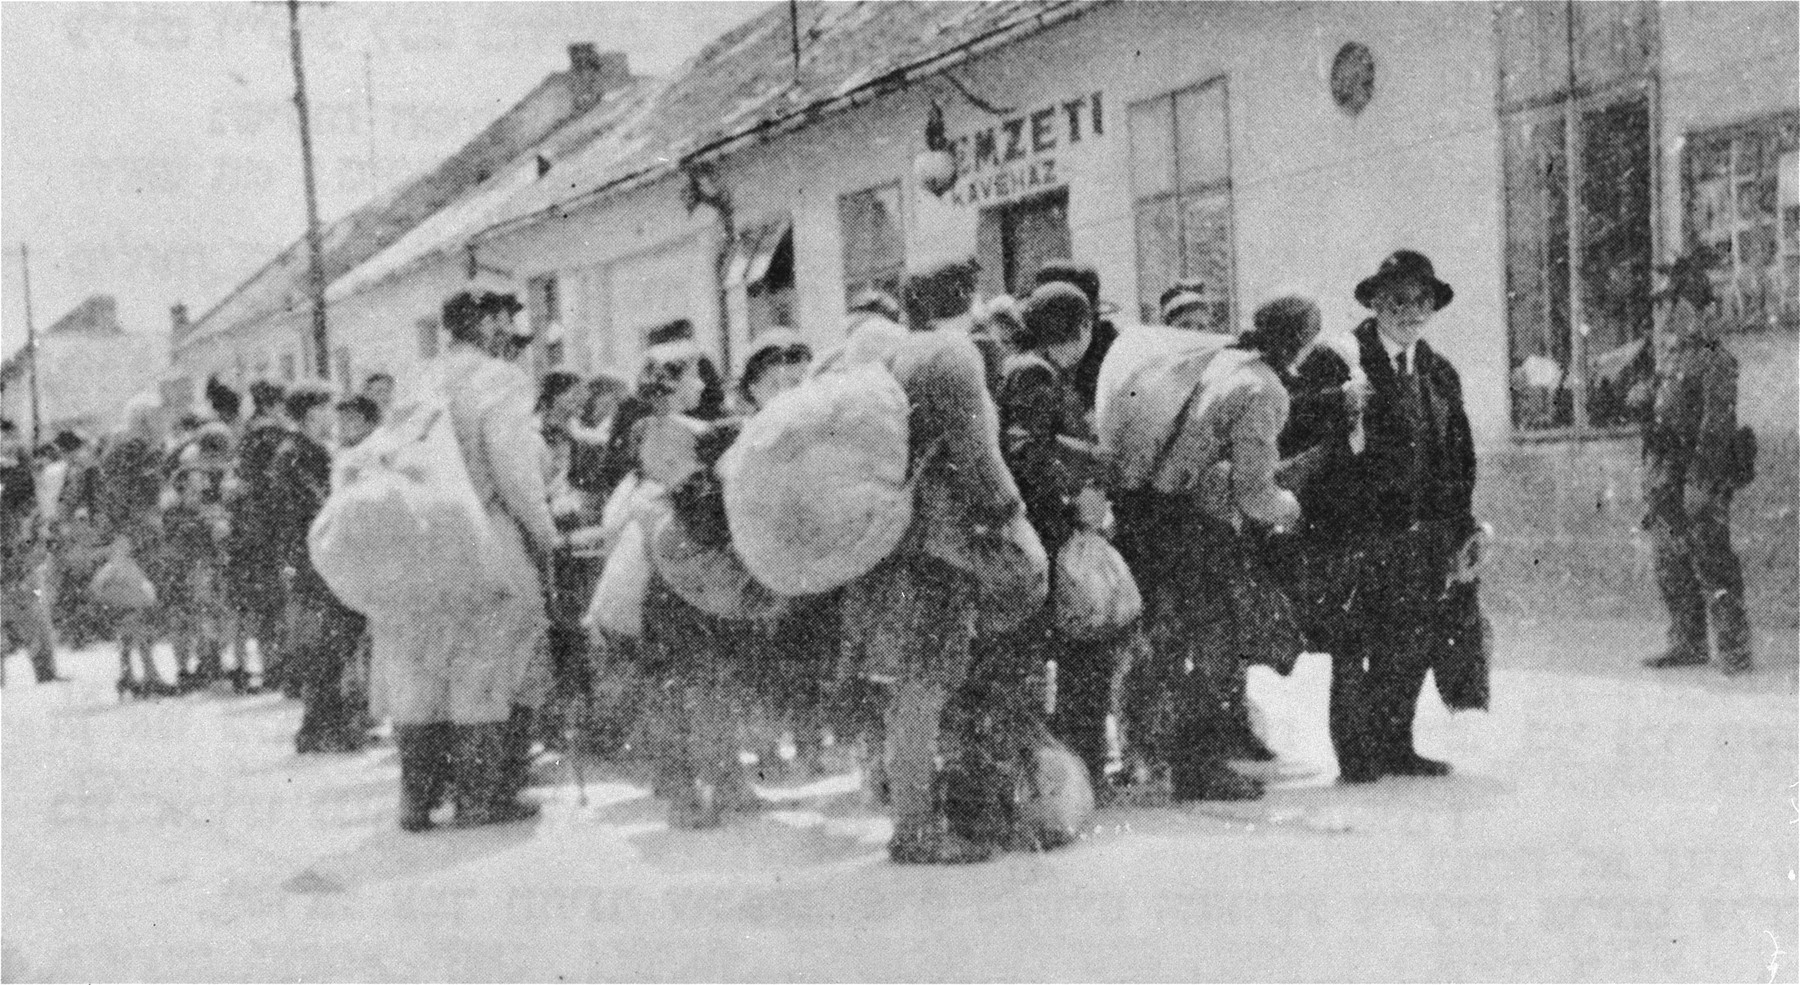 Deportation from Dunaszerdahely [Dunaska Streda].  Jews march along the Obizag Utca [Star Street] on their way to the train station.